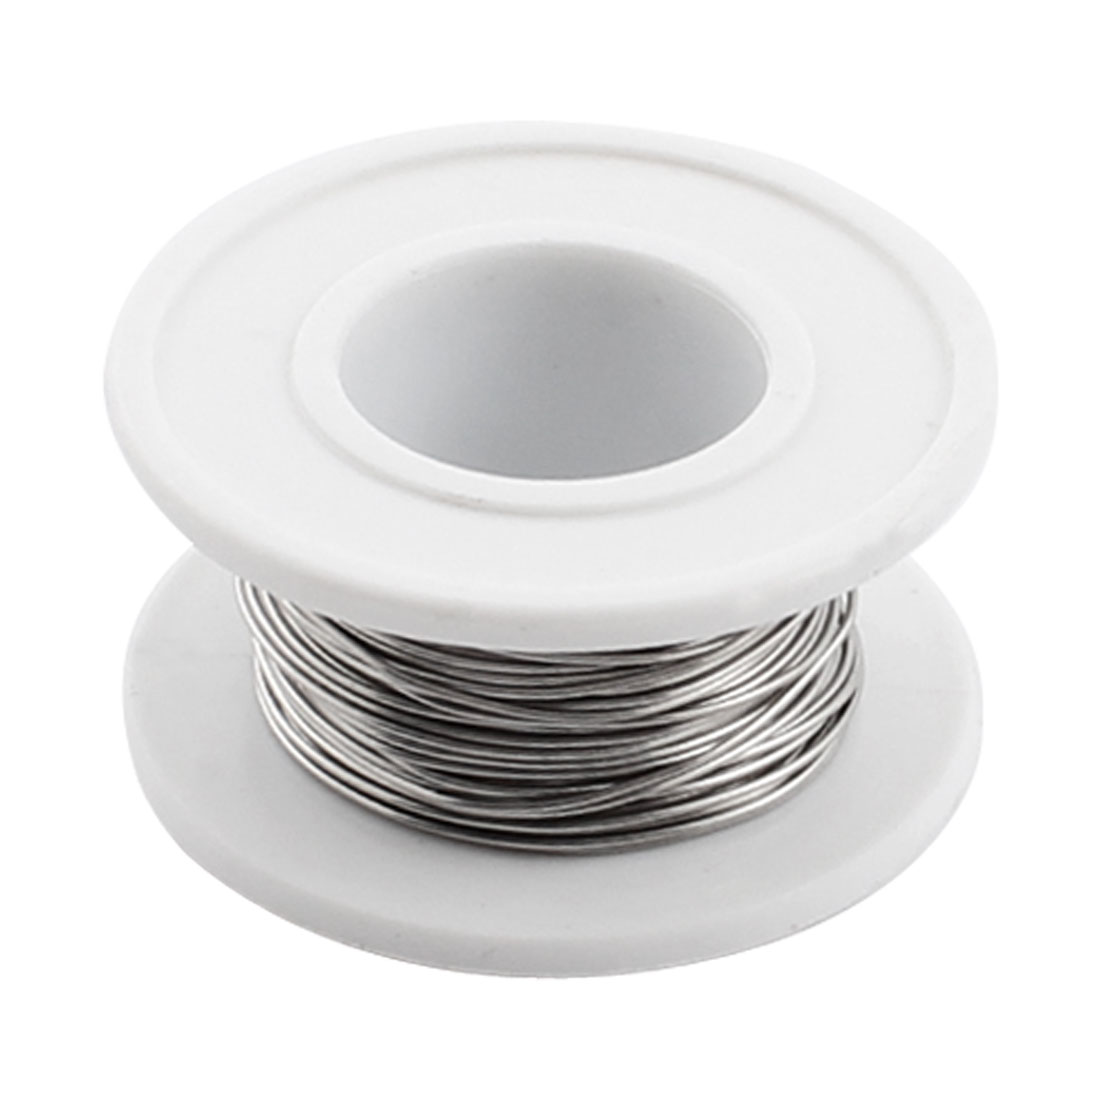 0.3mm Diameter AWG29 15.4Ohm/M 15meter 50ft Long Nichrome Resistance Resistor Wire Cable for Heating Elements